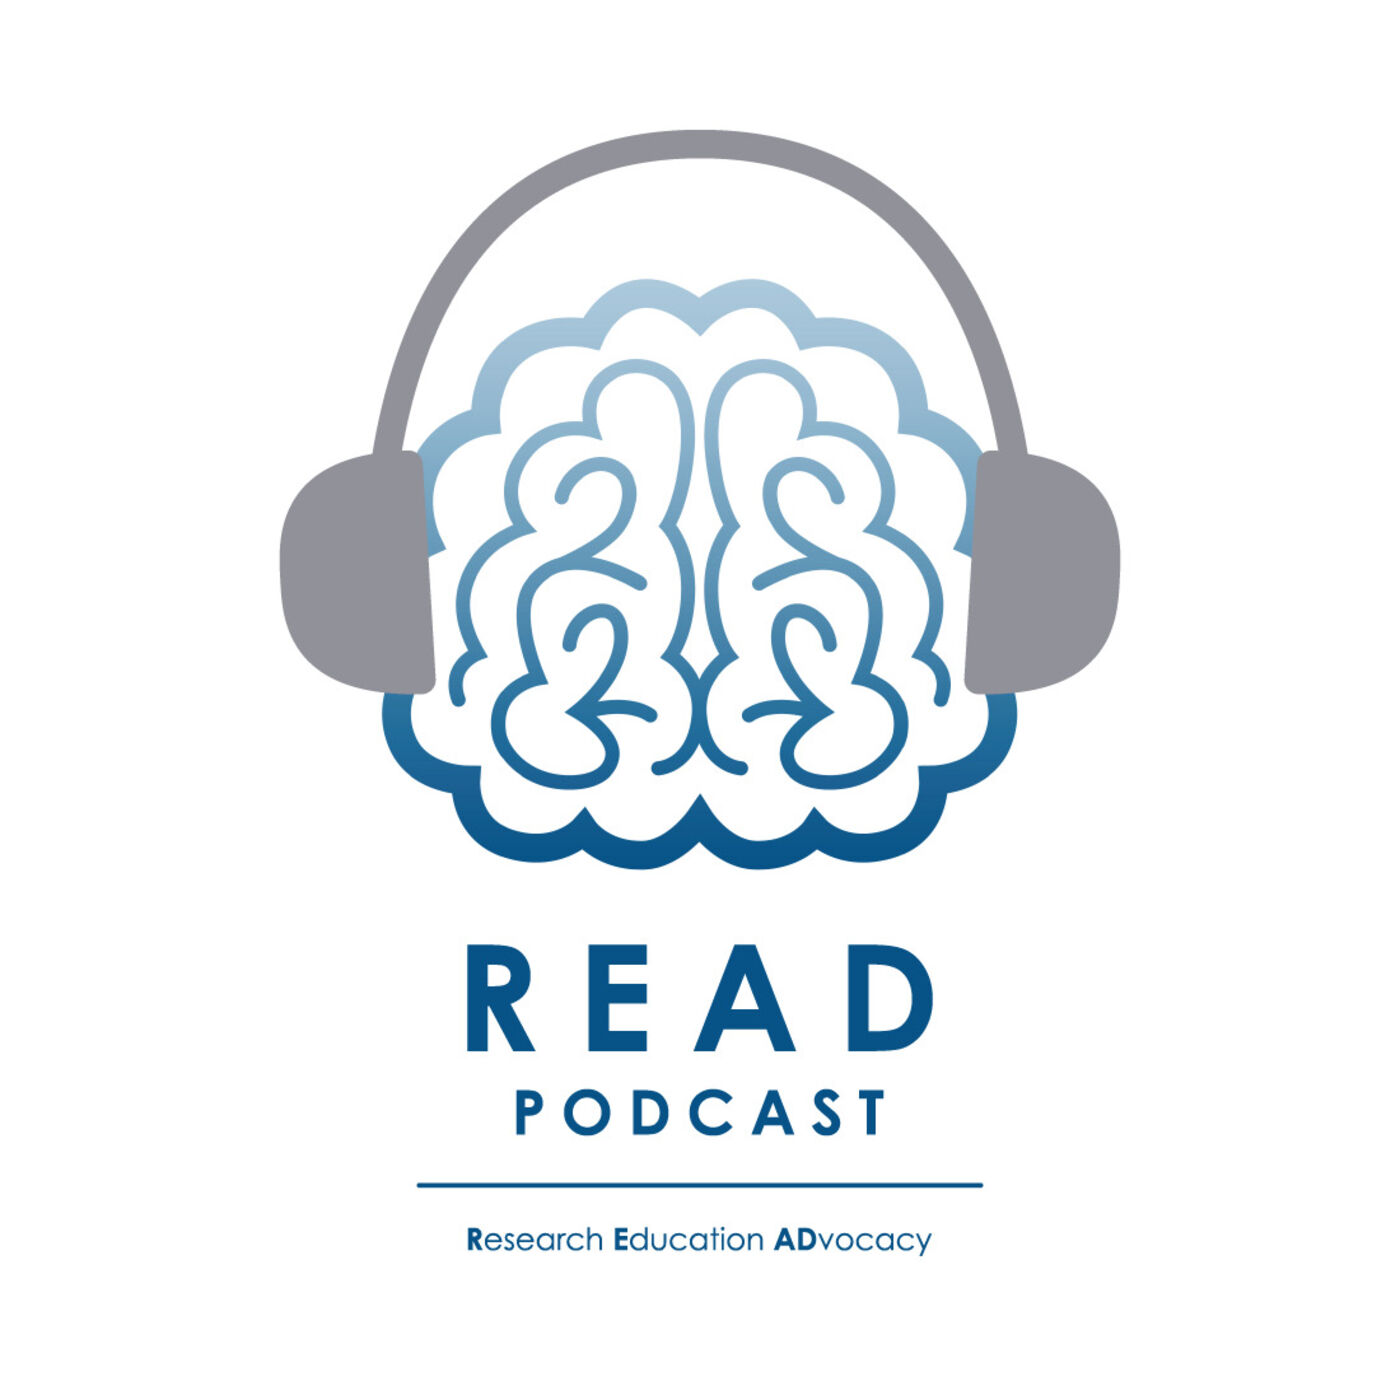 READ: The Research, Education and ADvocacy Podcast